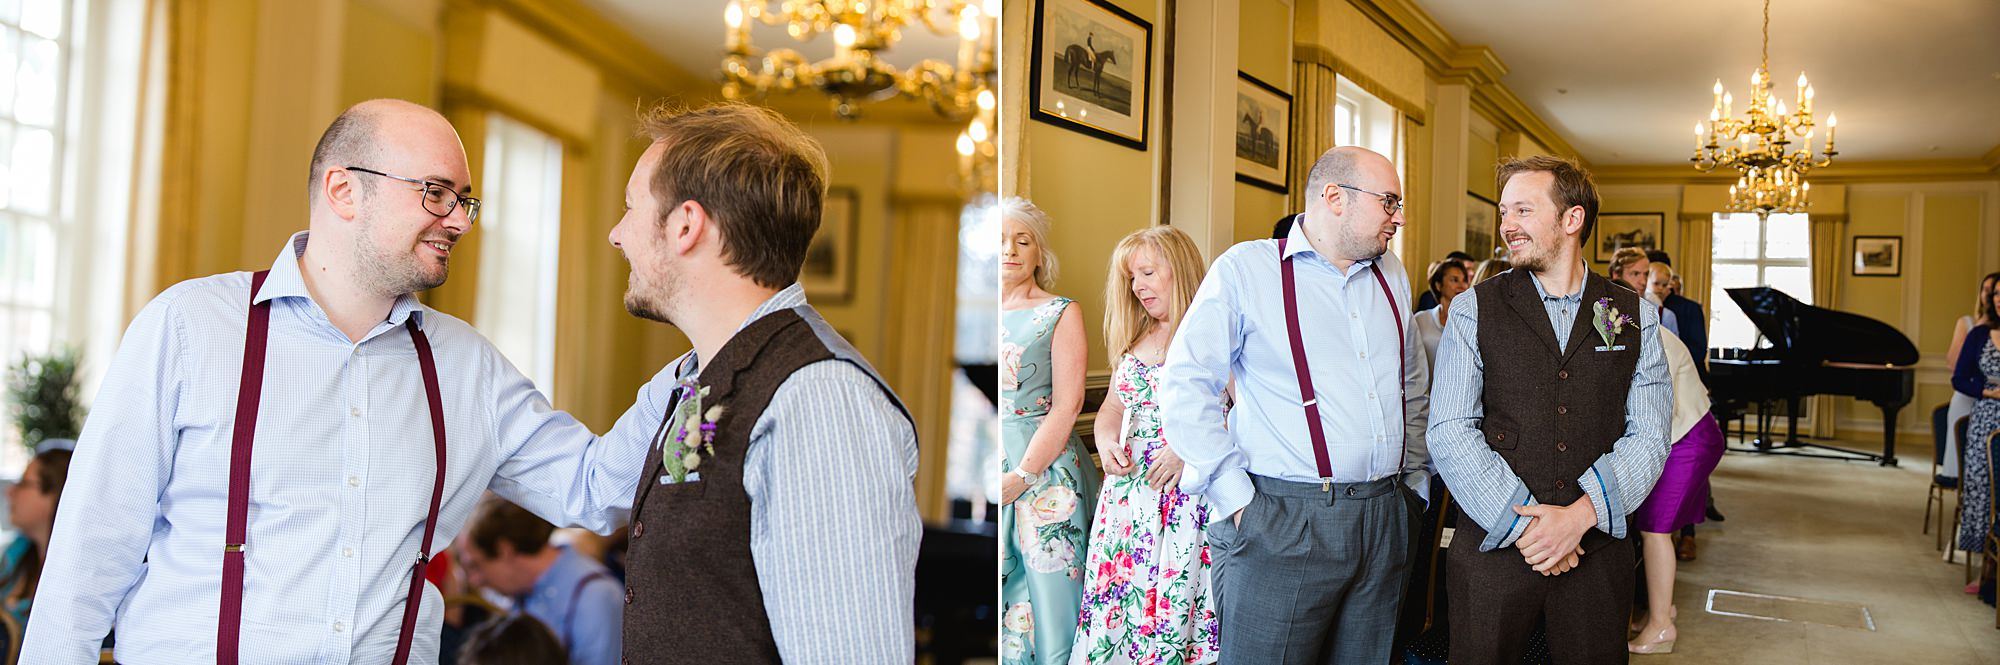 Fun village hall wedding portrait of groom waiting for bride at Edes house